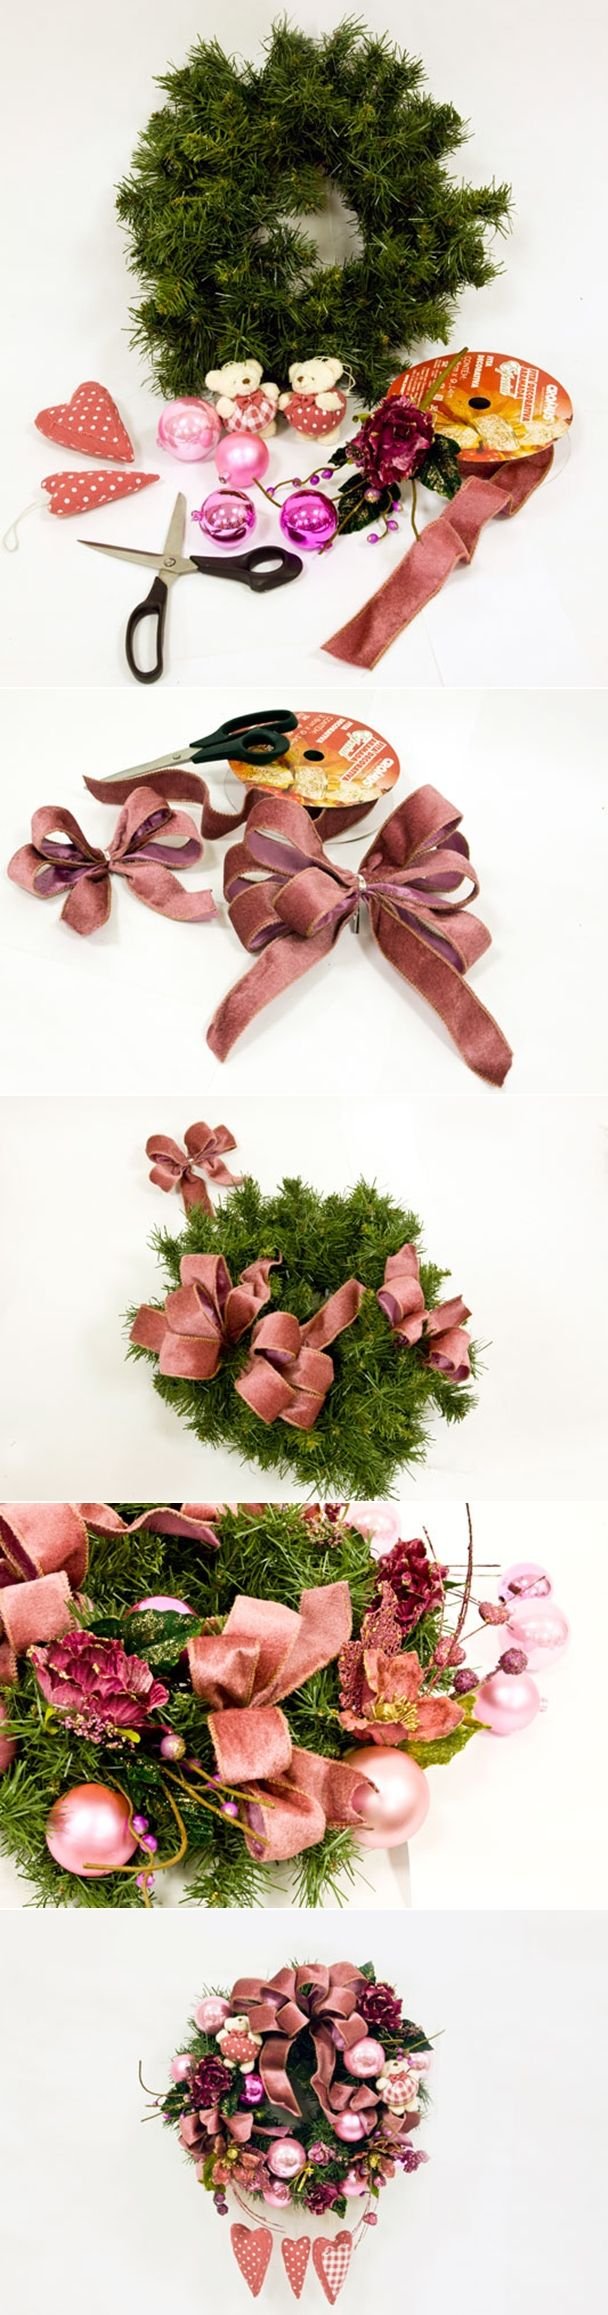 diy christmas wreath tutorial with pink decorations